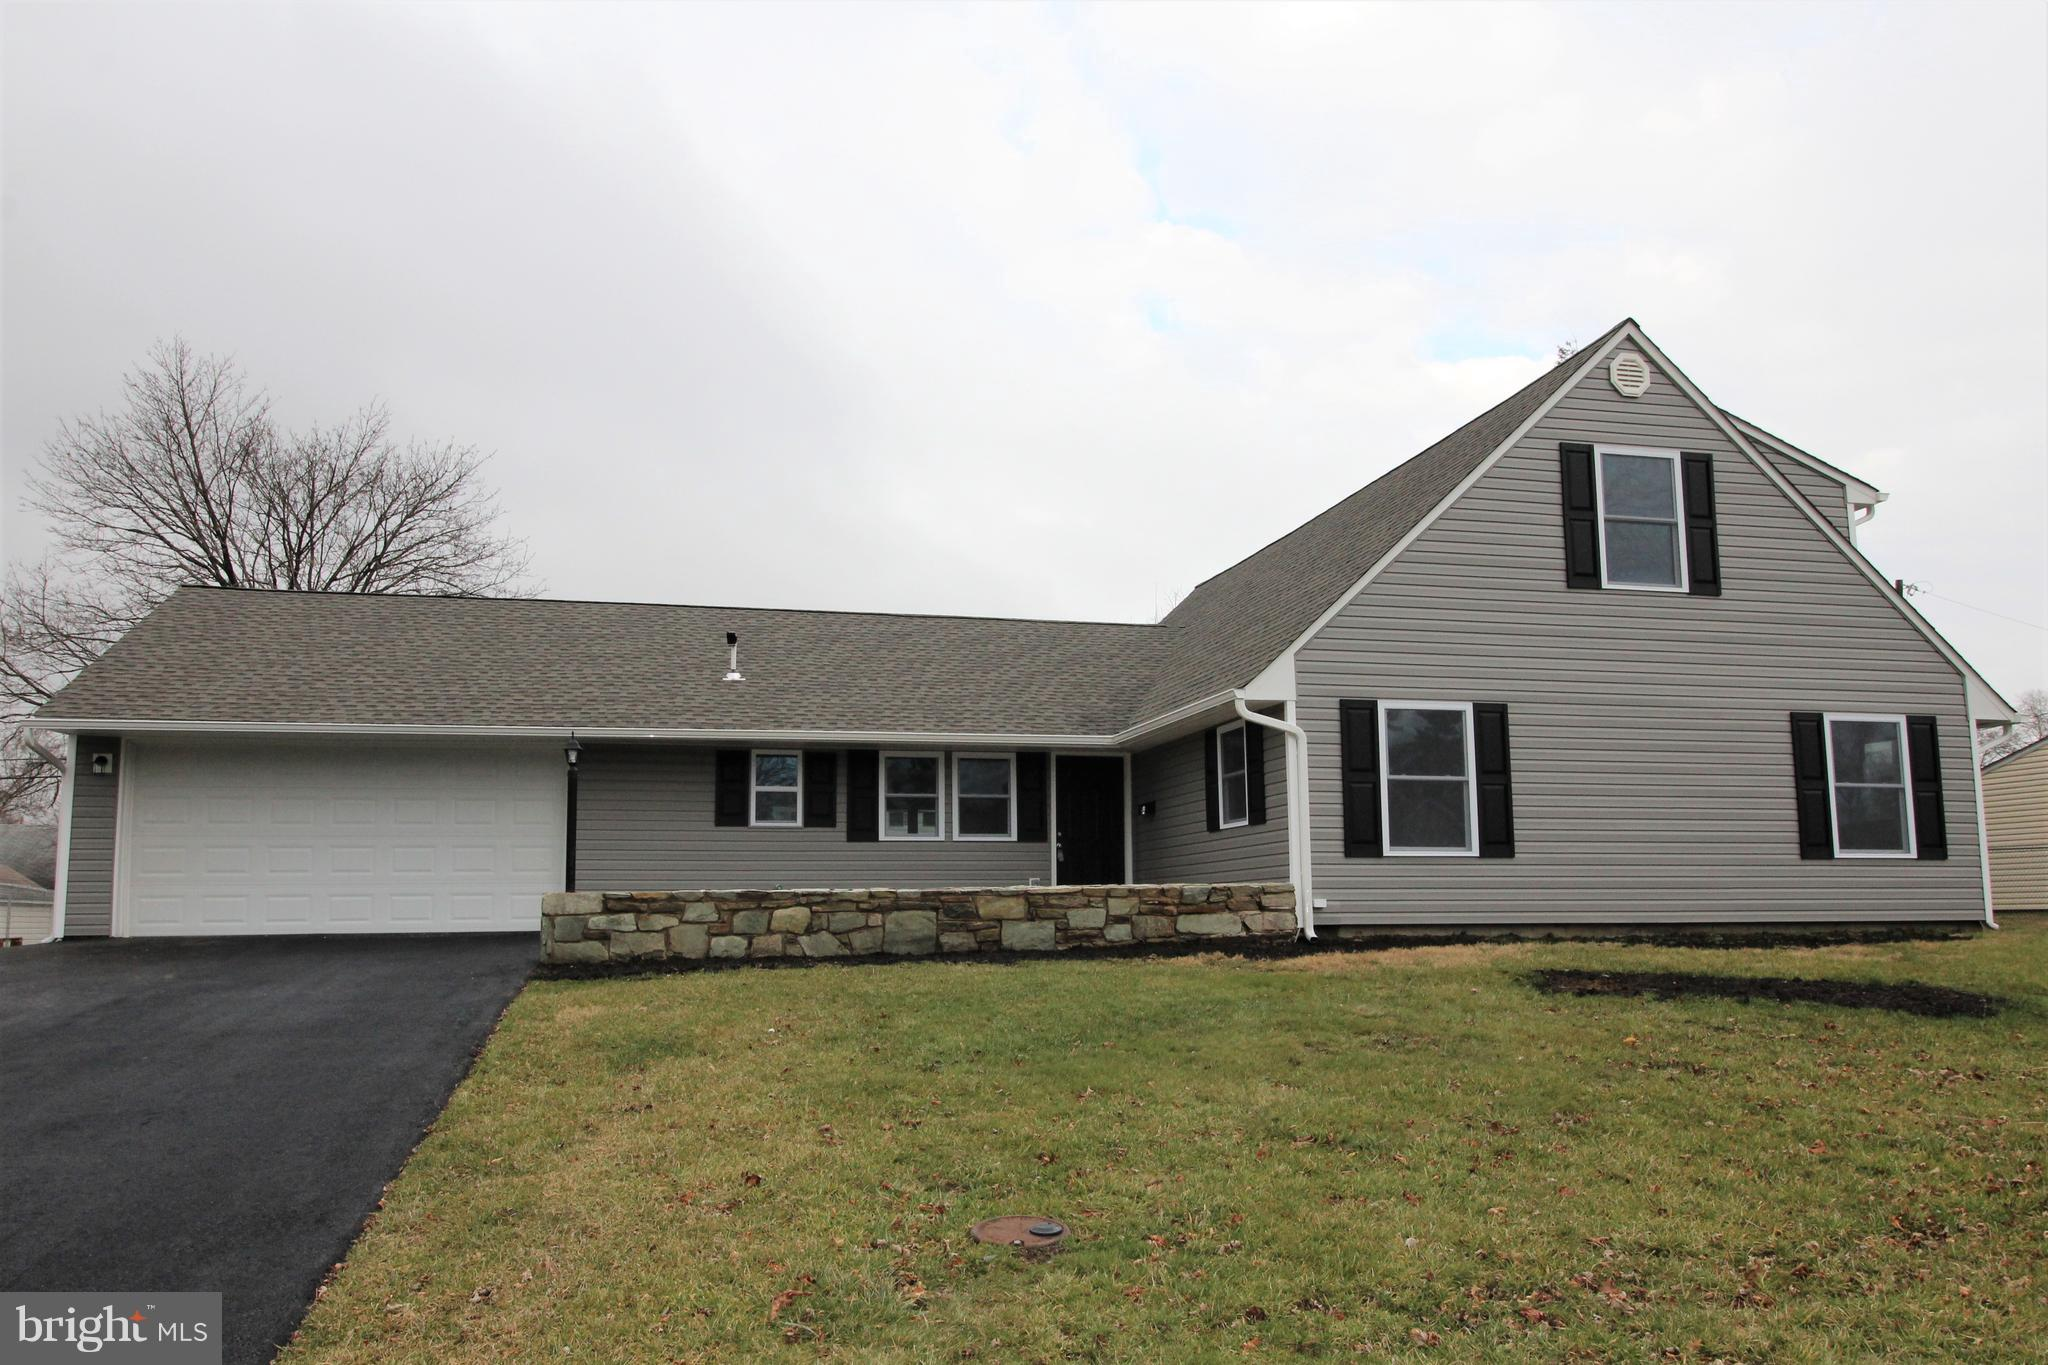 34 SYCAMORE ROAD, LEVITTOWN, PA 19056